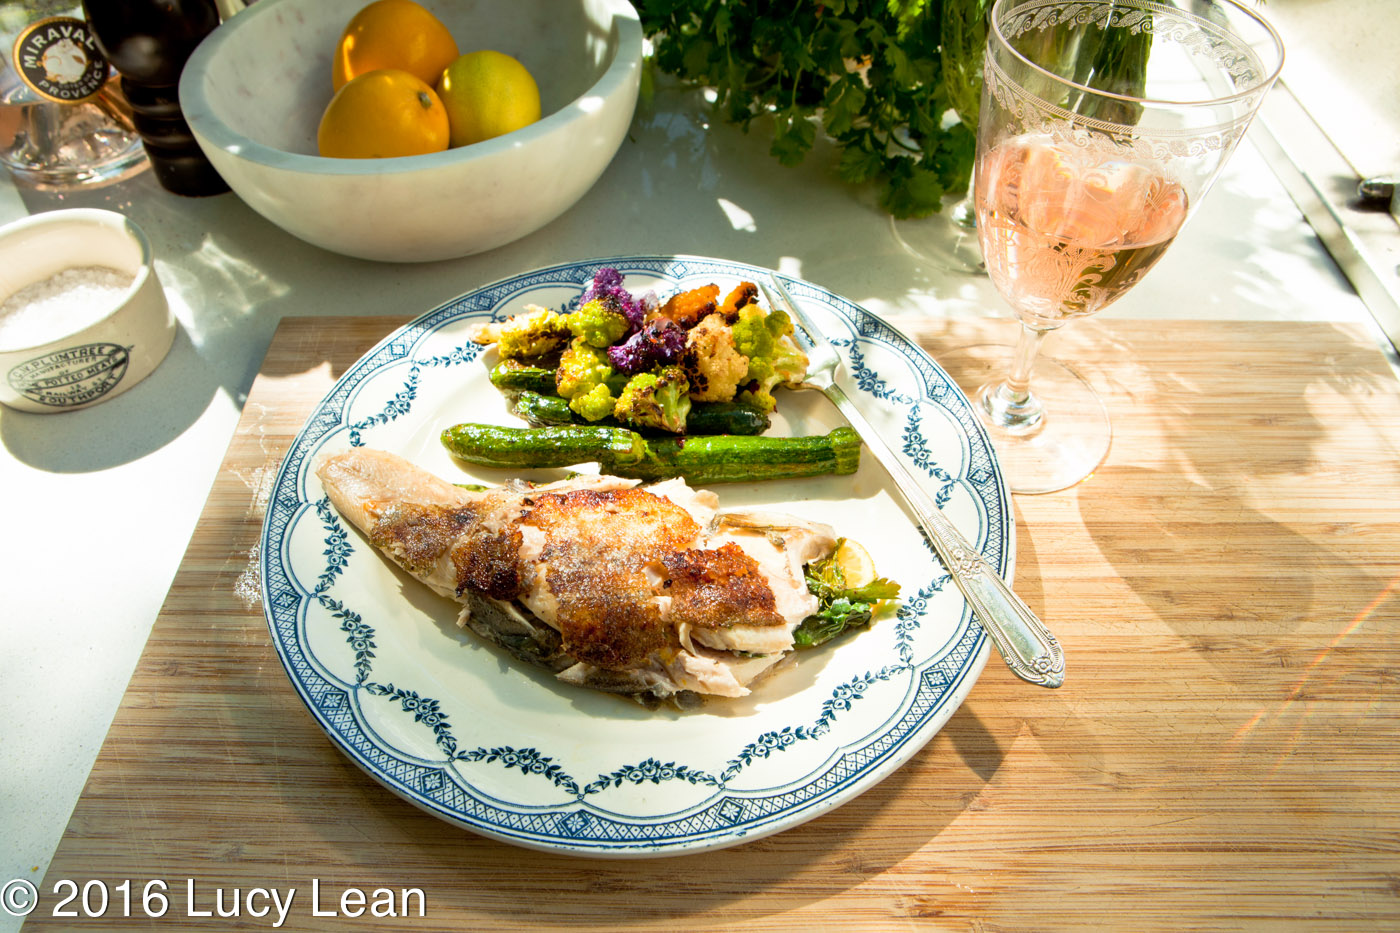 Healthy Grilled Trout with Baby Veggies and Jolie-Pitt Rosé